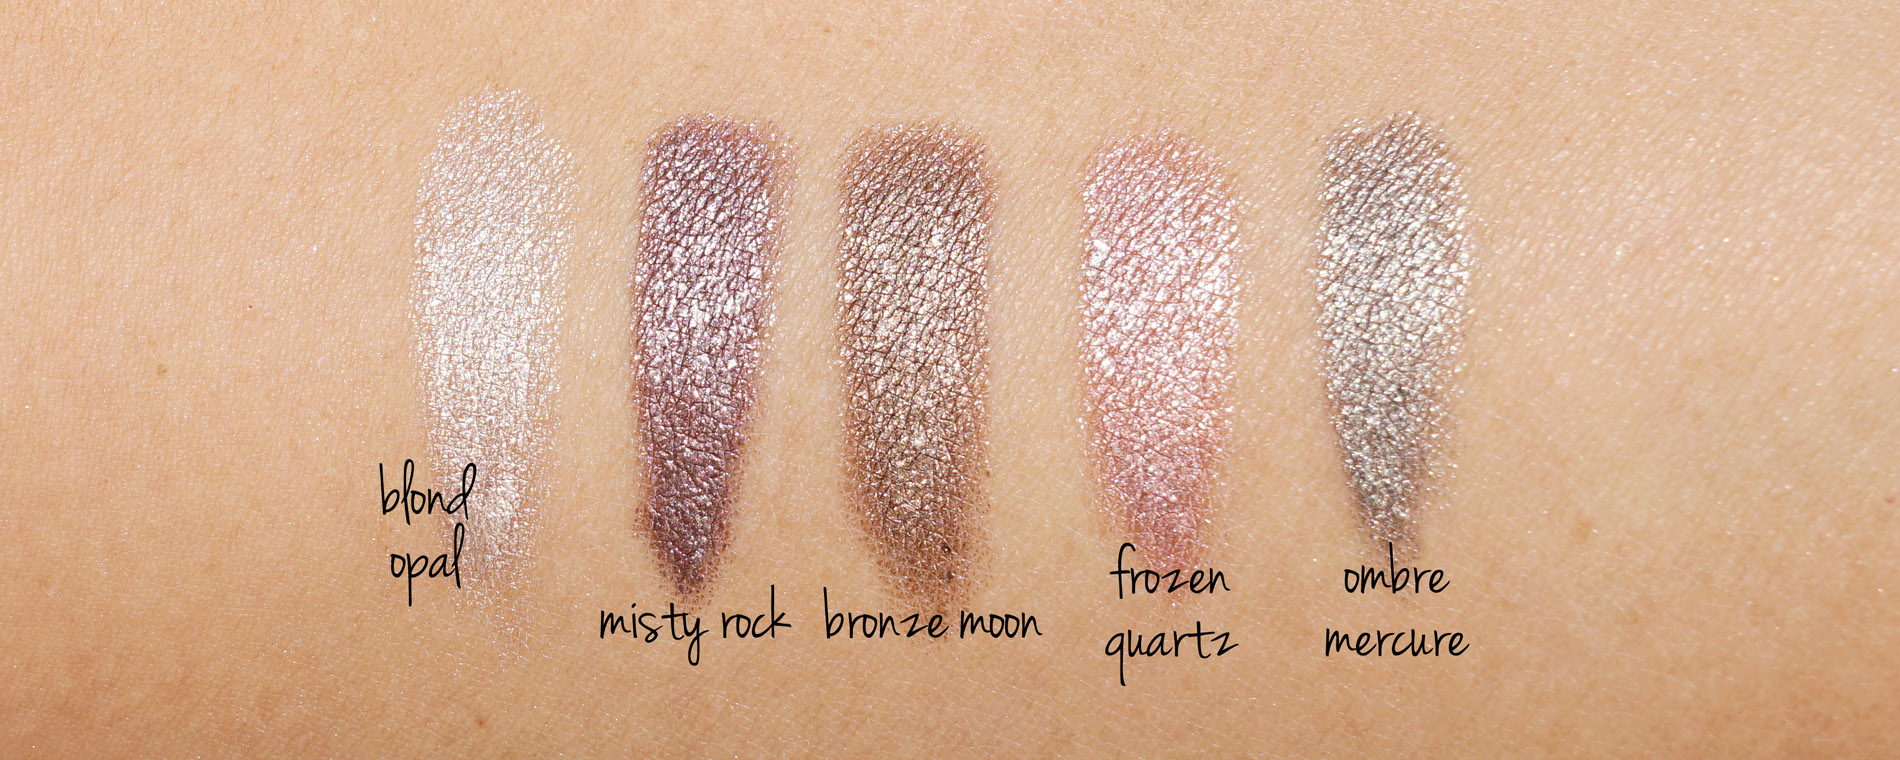 By Terry Gem Glow Holiday Collection Review  Swatches